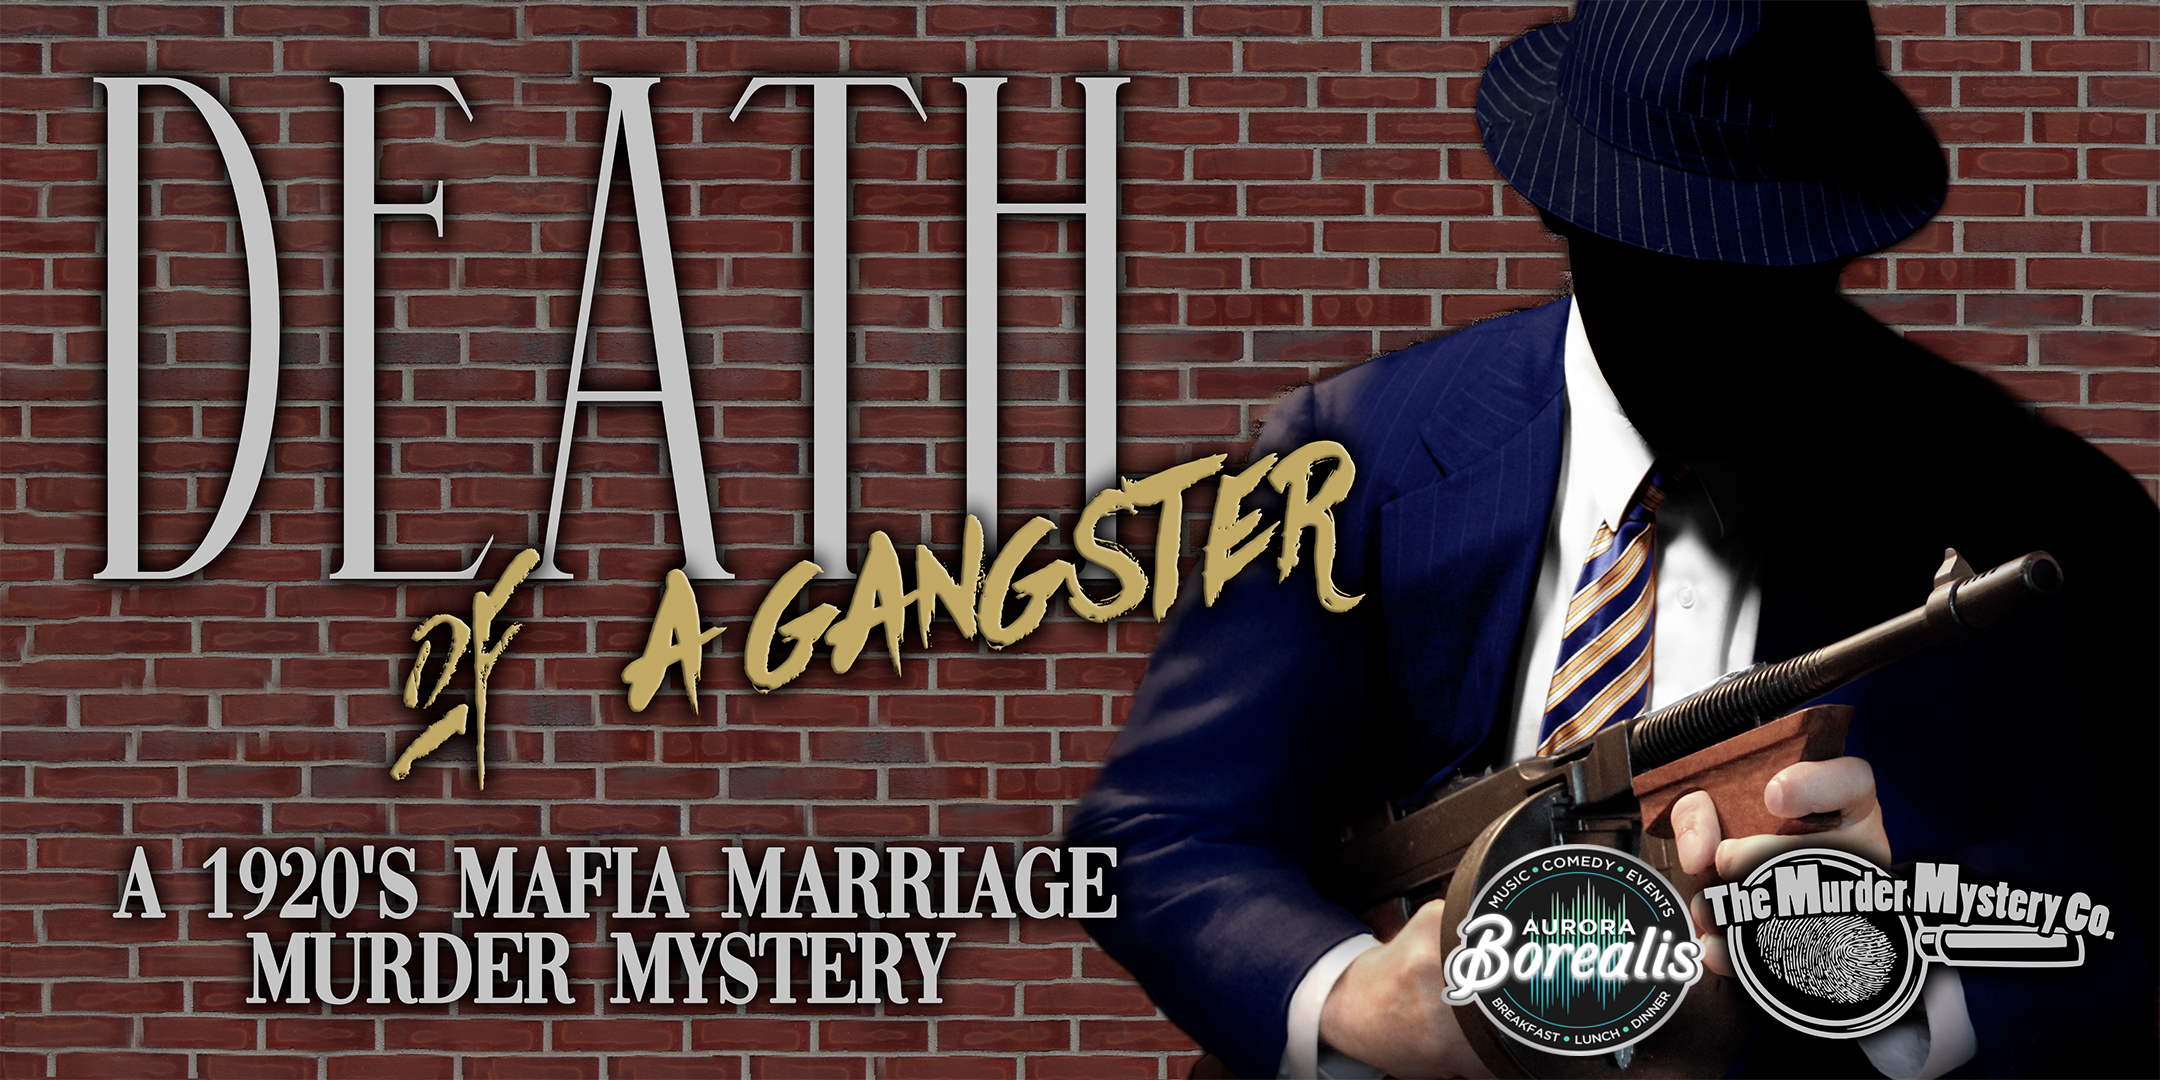 DEATH OF A GANGSTER: A 1920's mafia marriage murder mystery dinner & show